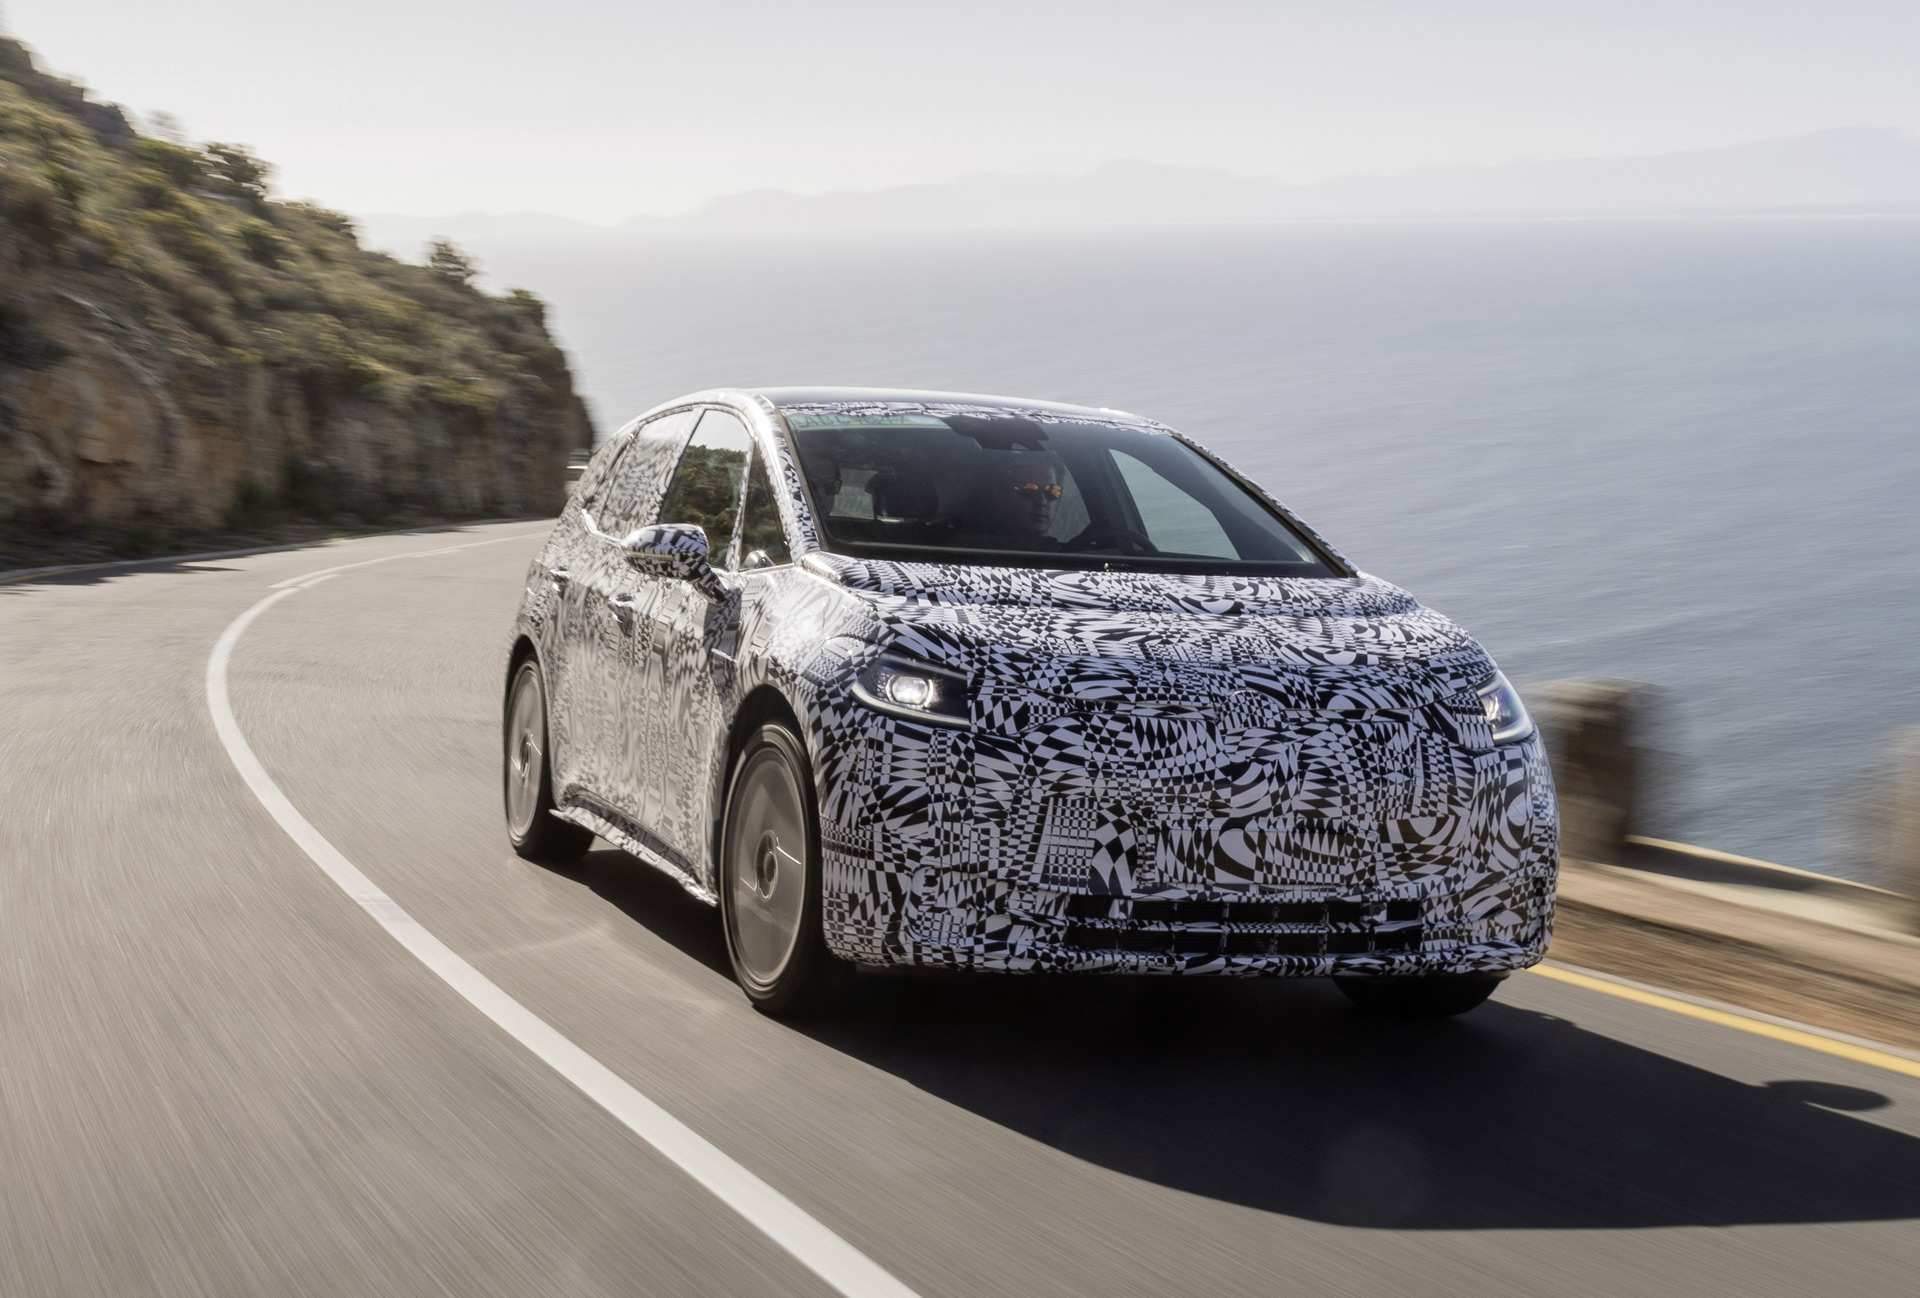 62 All New 2020 Spy Shots Toyota Prius Prices